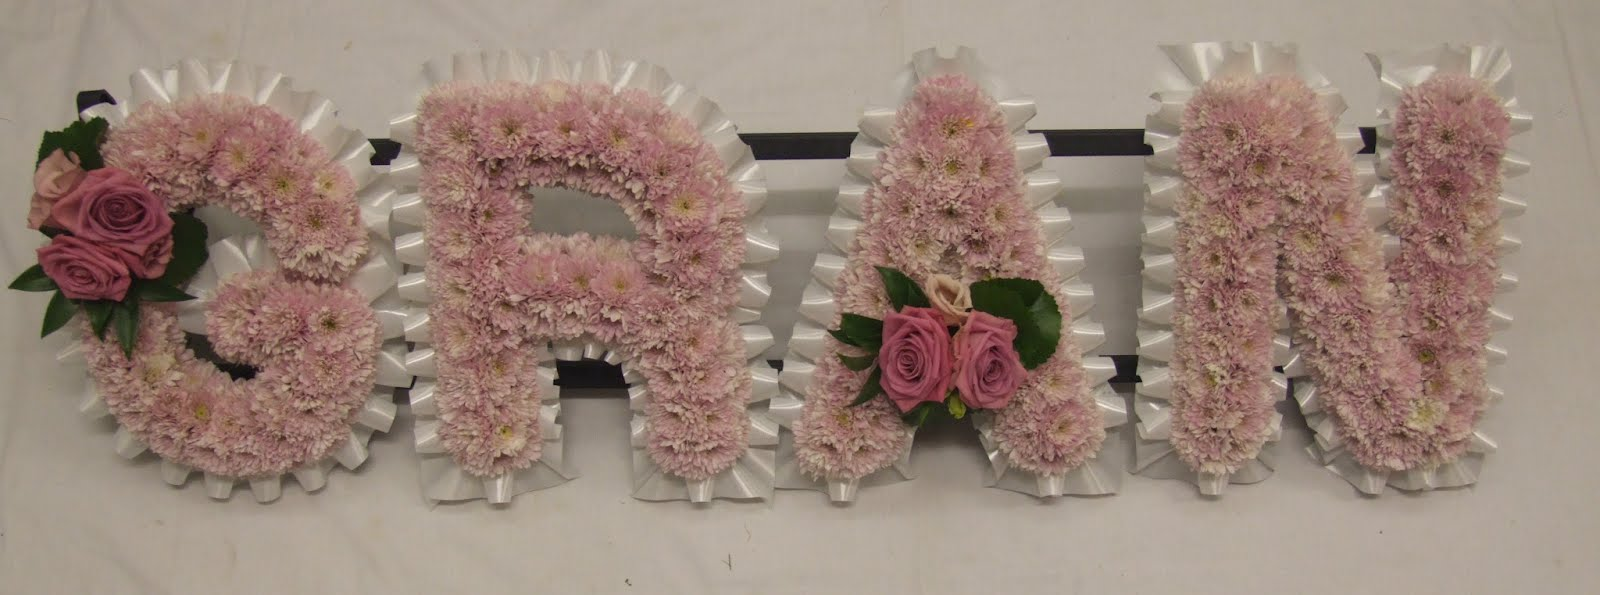 Rjs florist funeral flowers gates of heaven with a red rose spray izmirmasajfo Choice Image